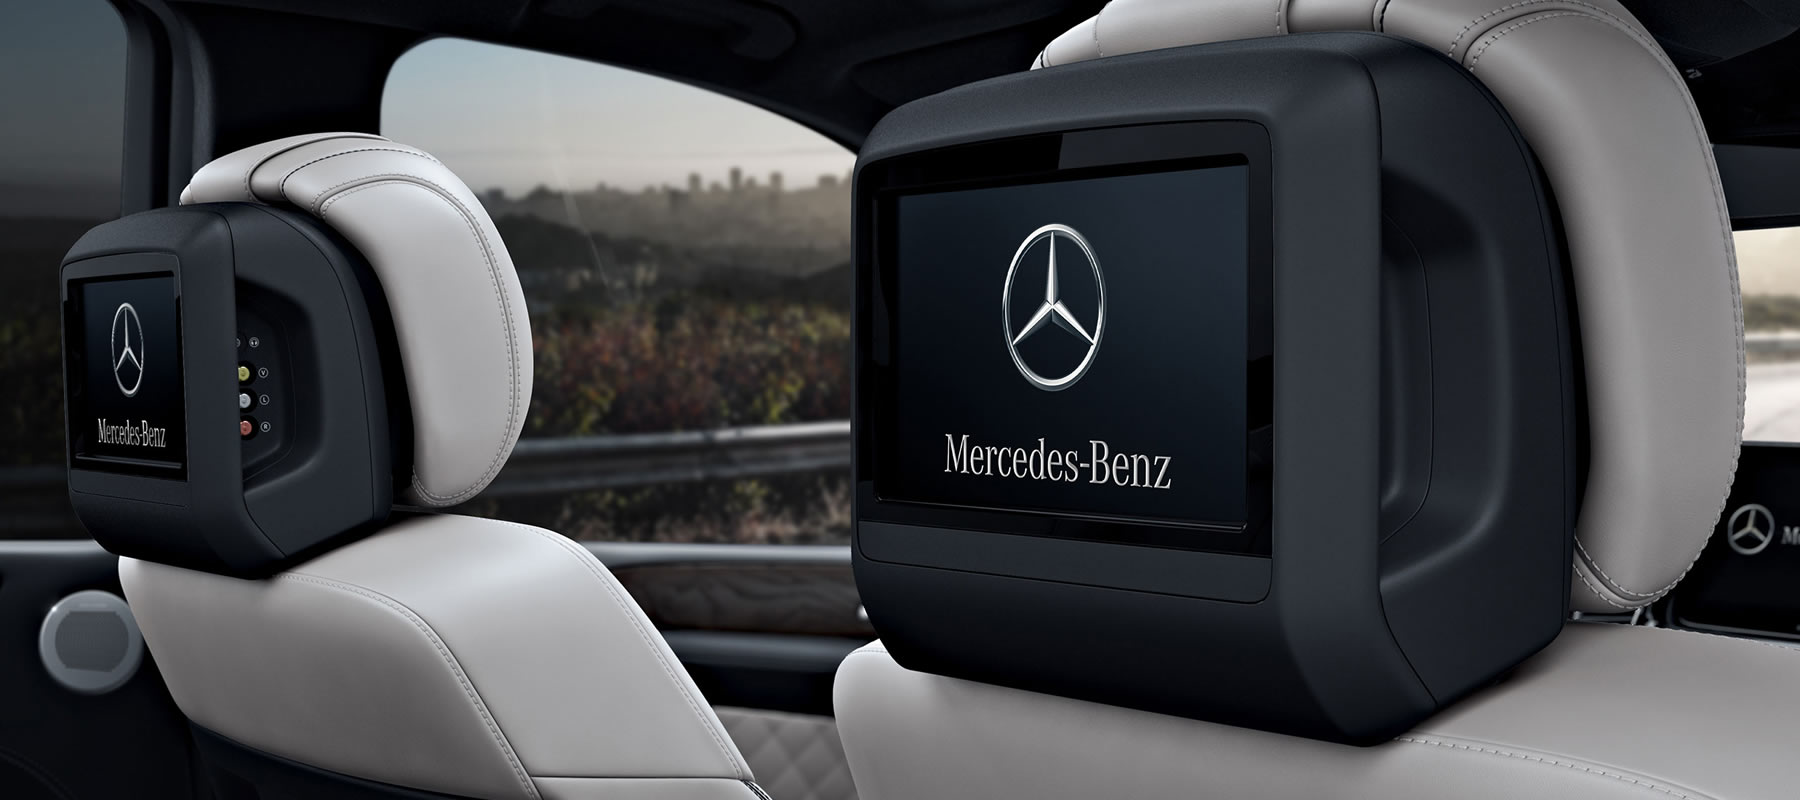 Genuine mercedes benz parts accessories at mercedes benz for Mercedes benz escondido parts